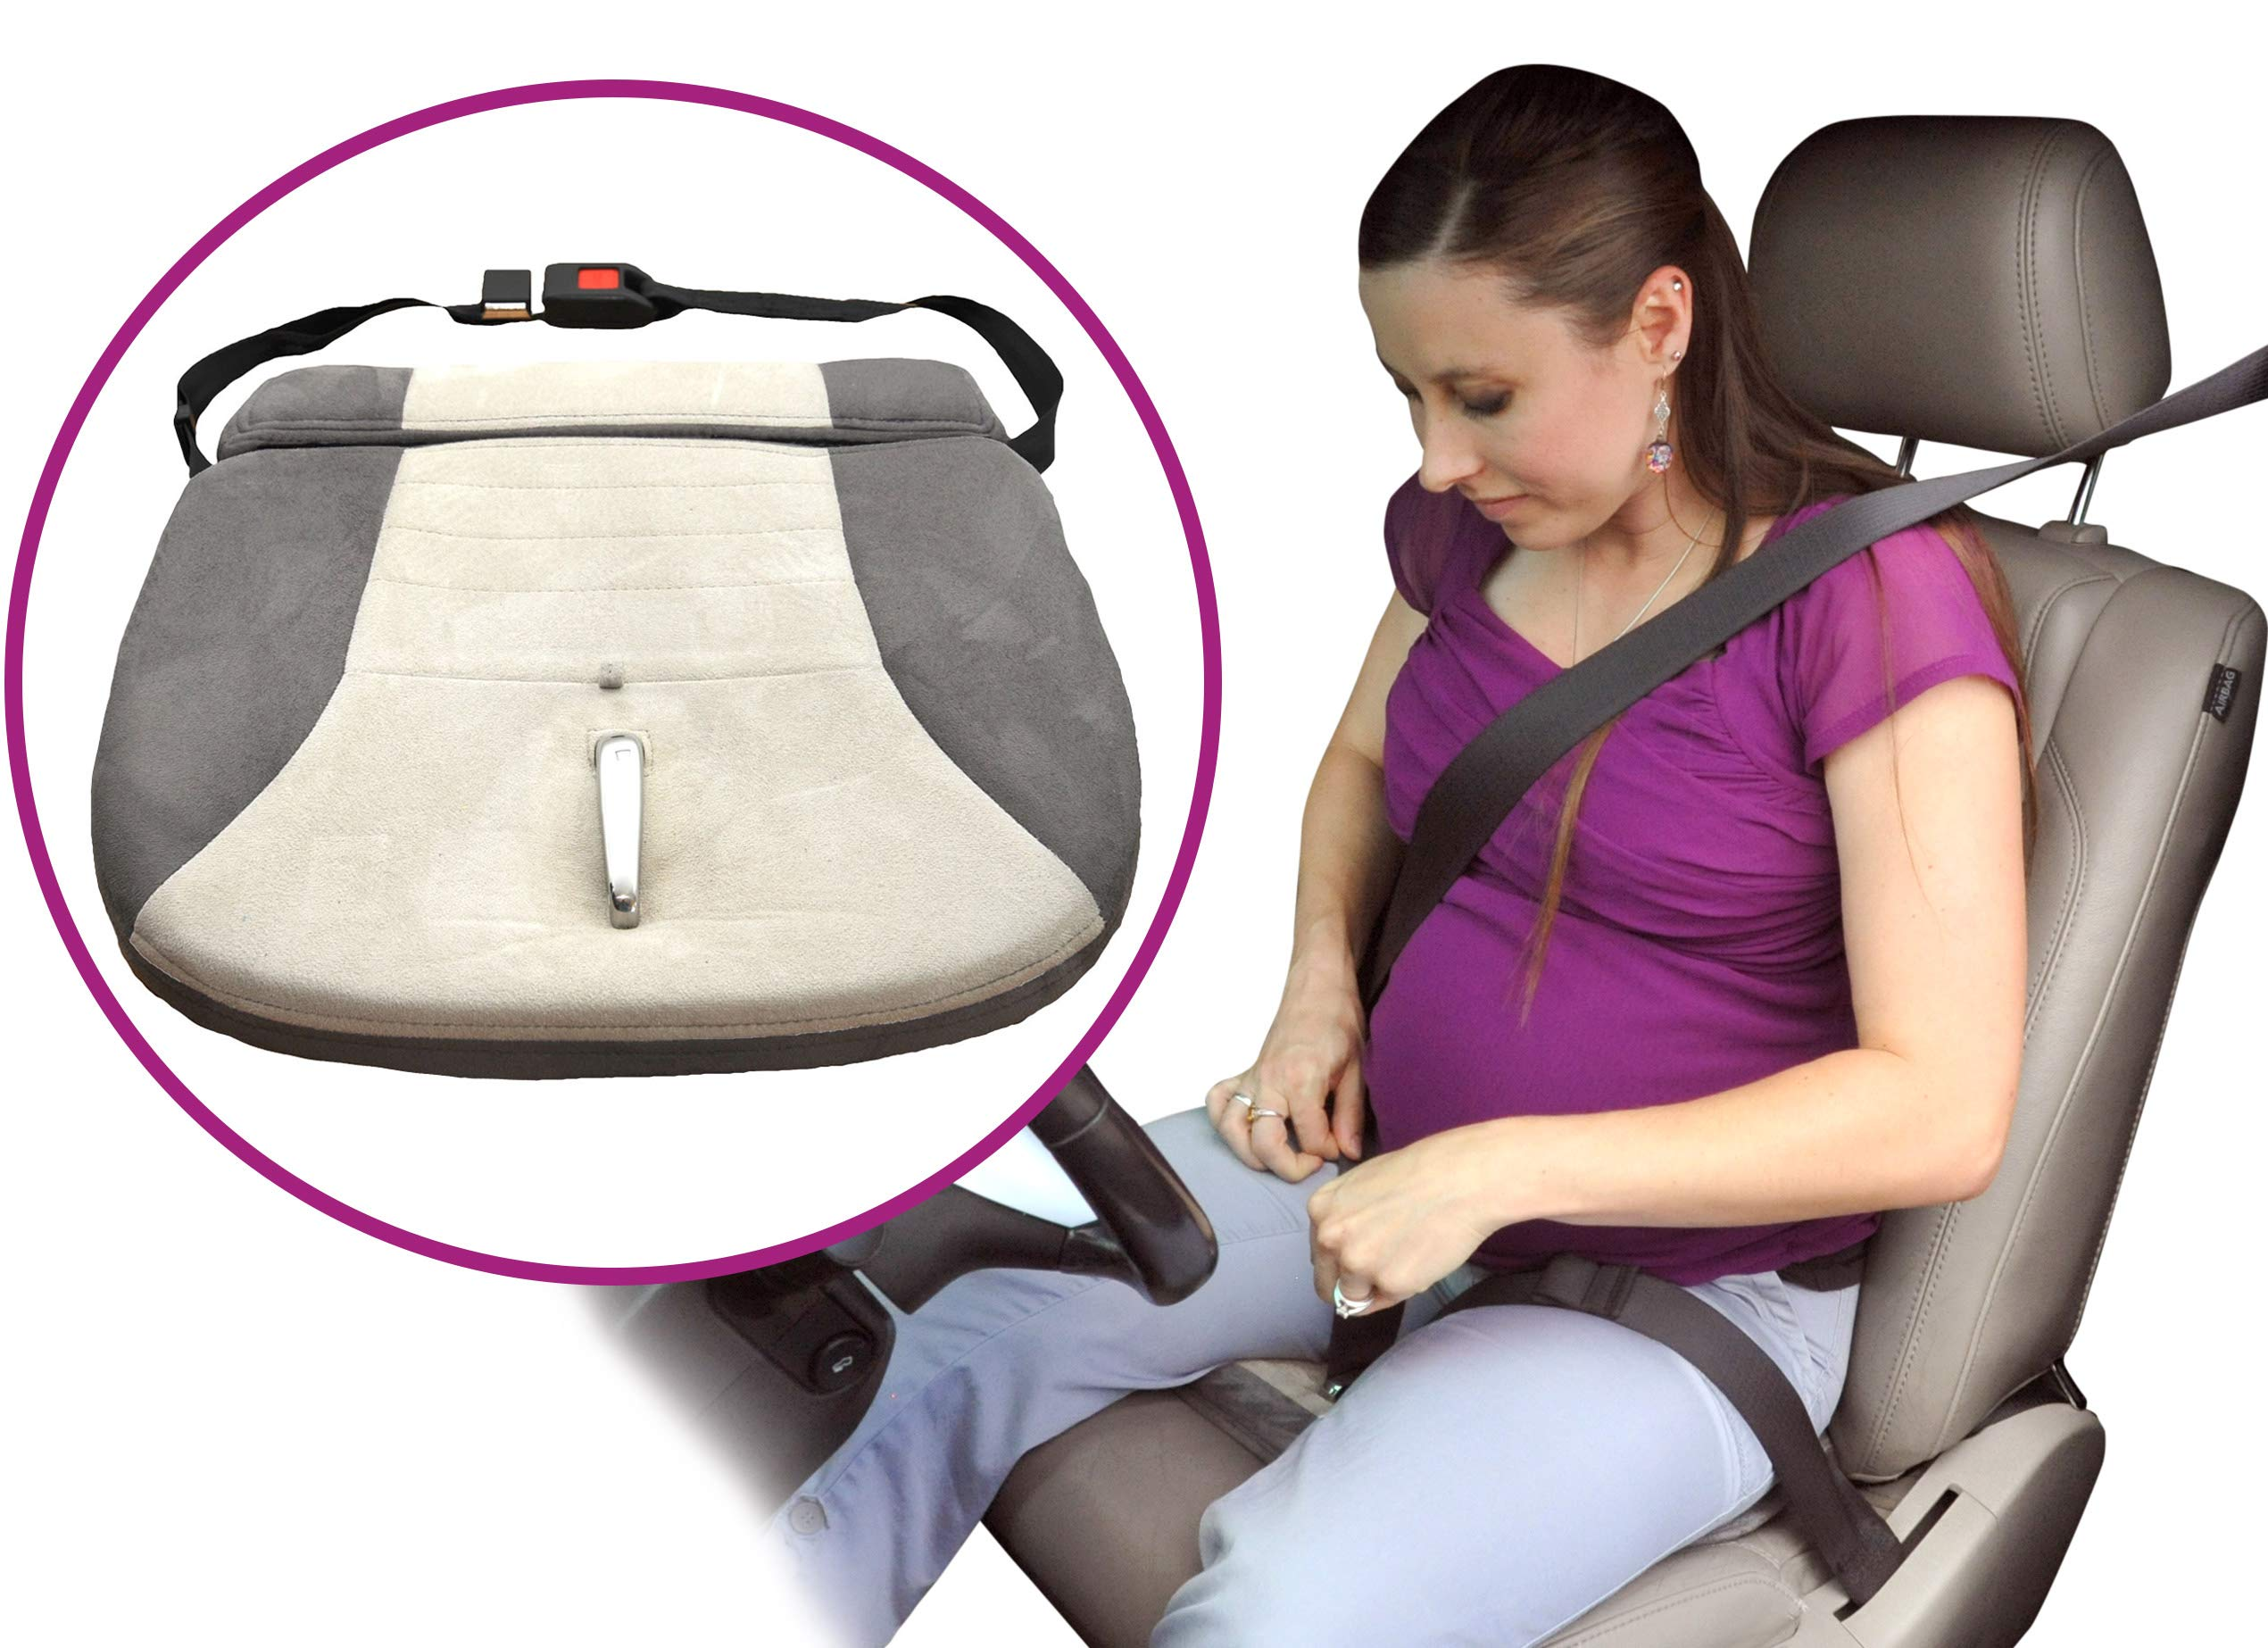 Tummy Shield Pregnancy Comfort Seat Belt Adjuster by TUMMY SHIELD